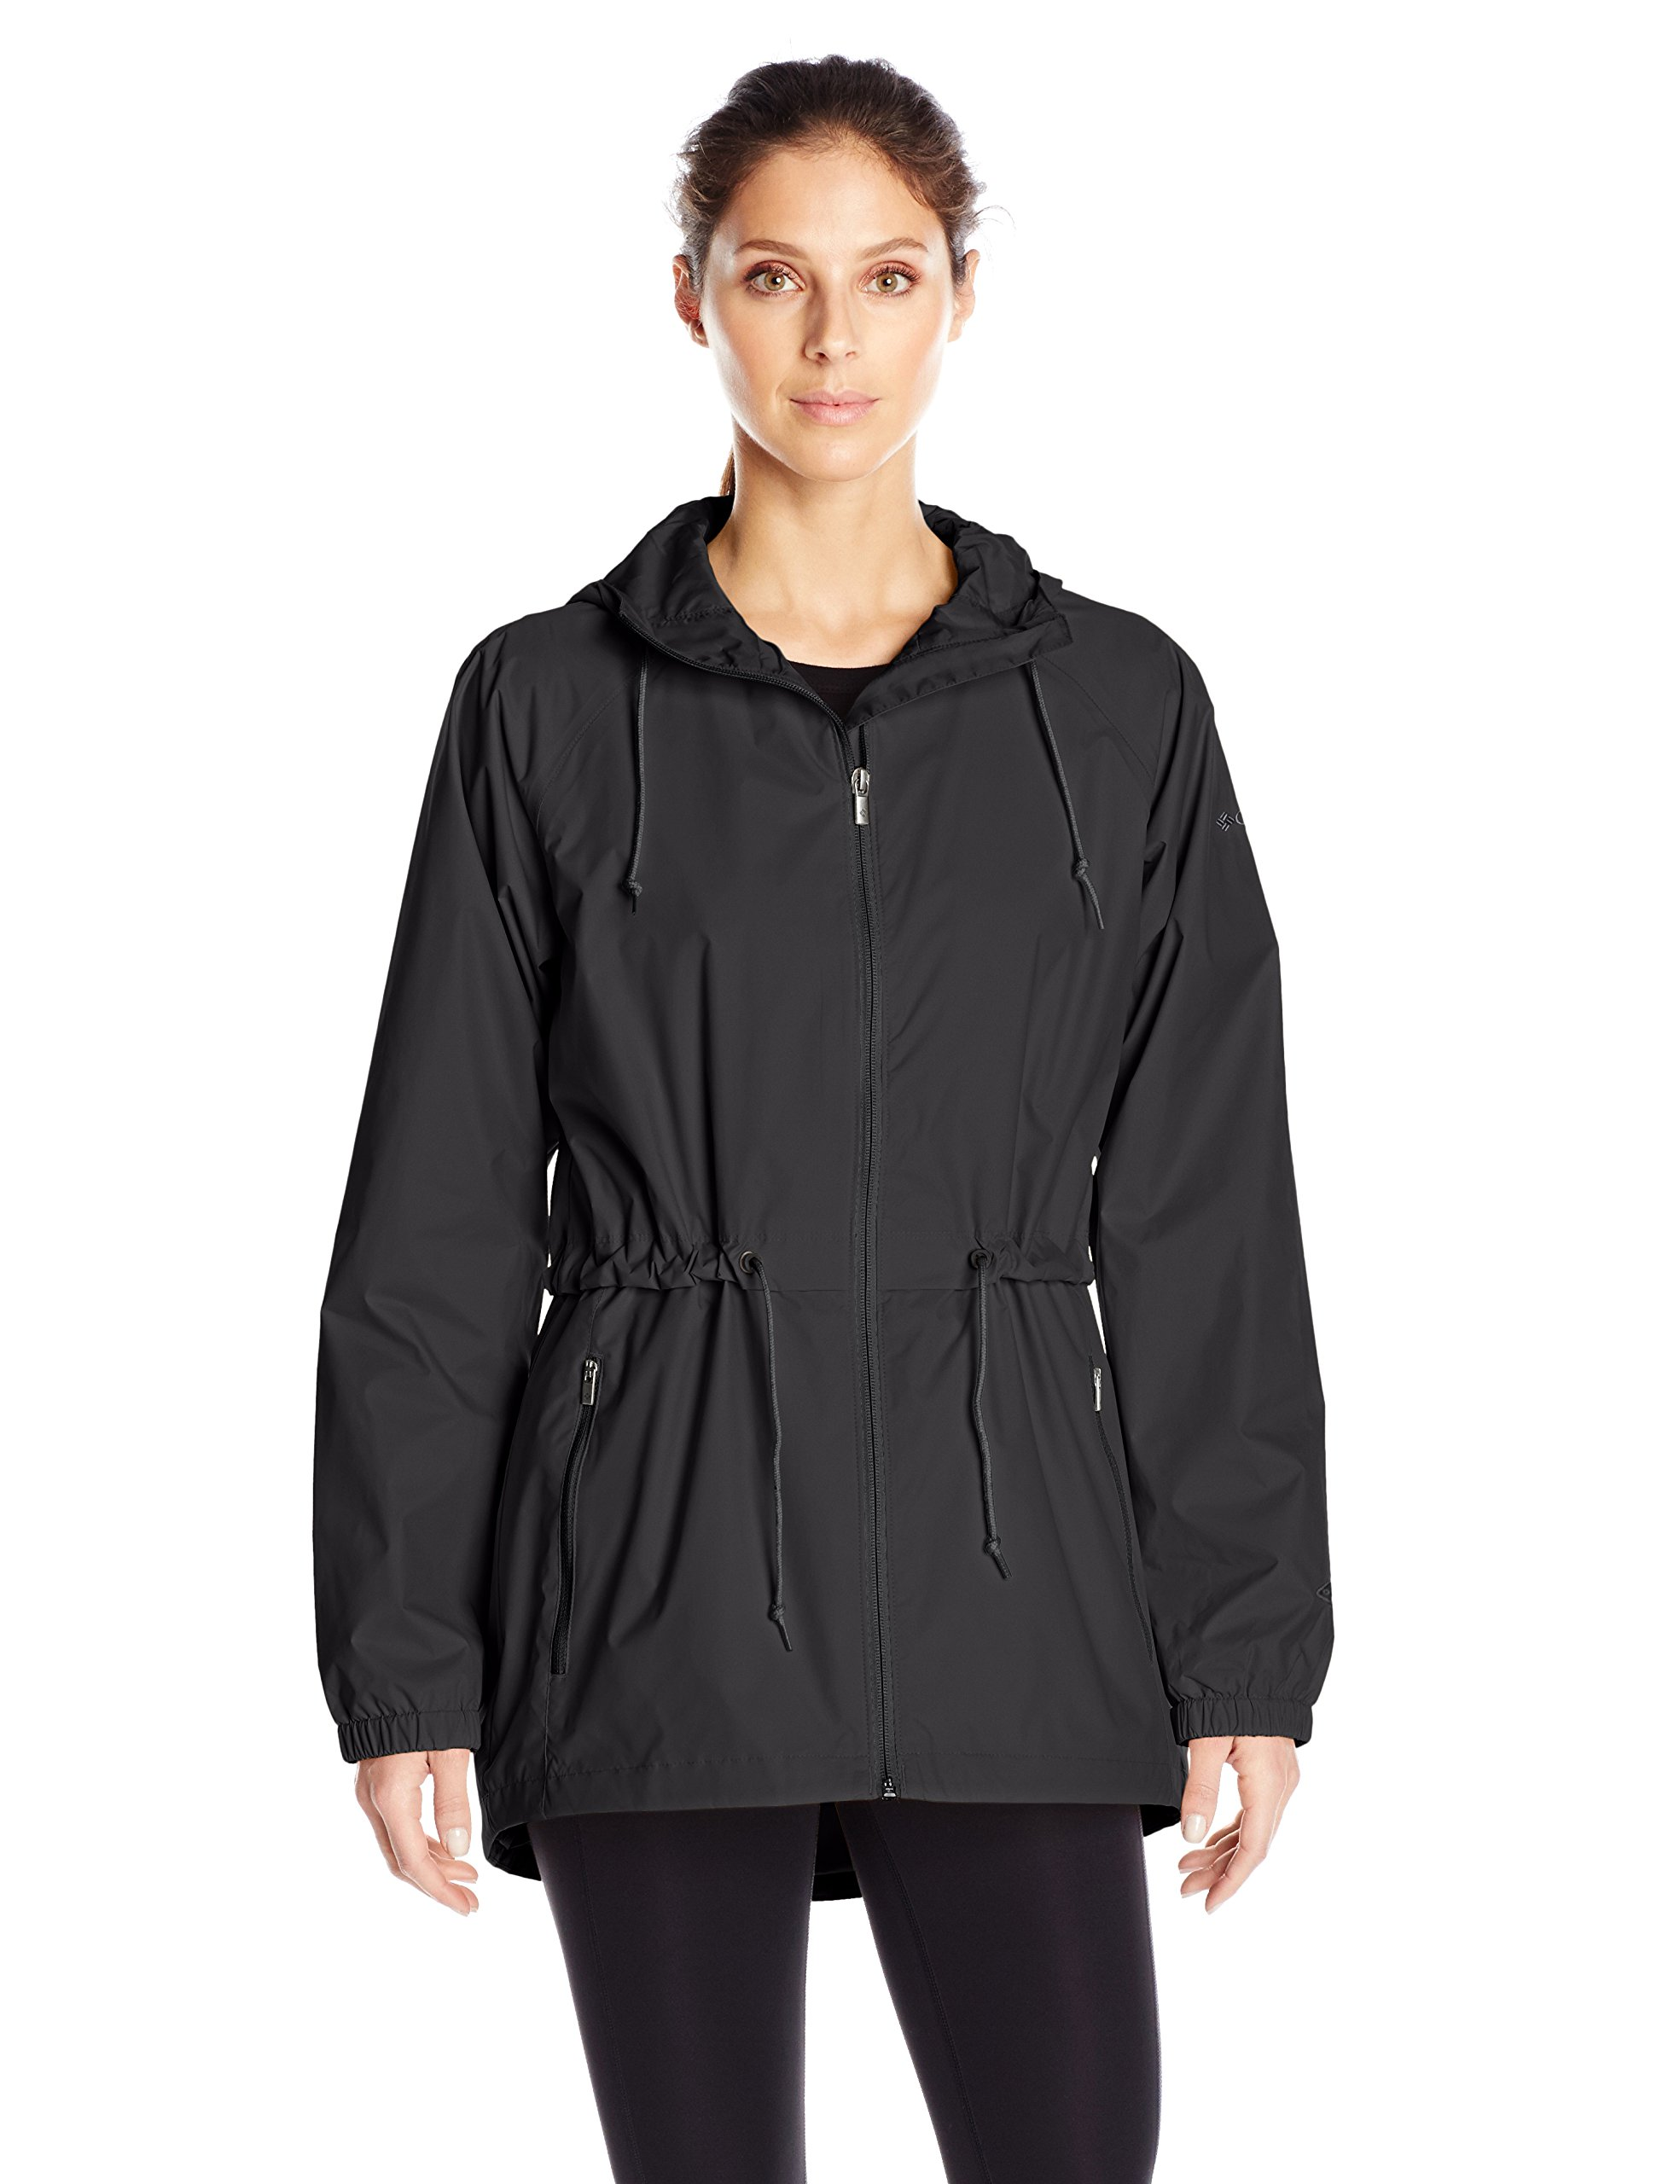 Columbia Women's Arcadia Casual Jacket Outerwear, Black, L